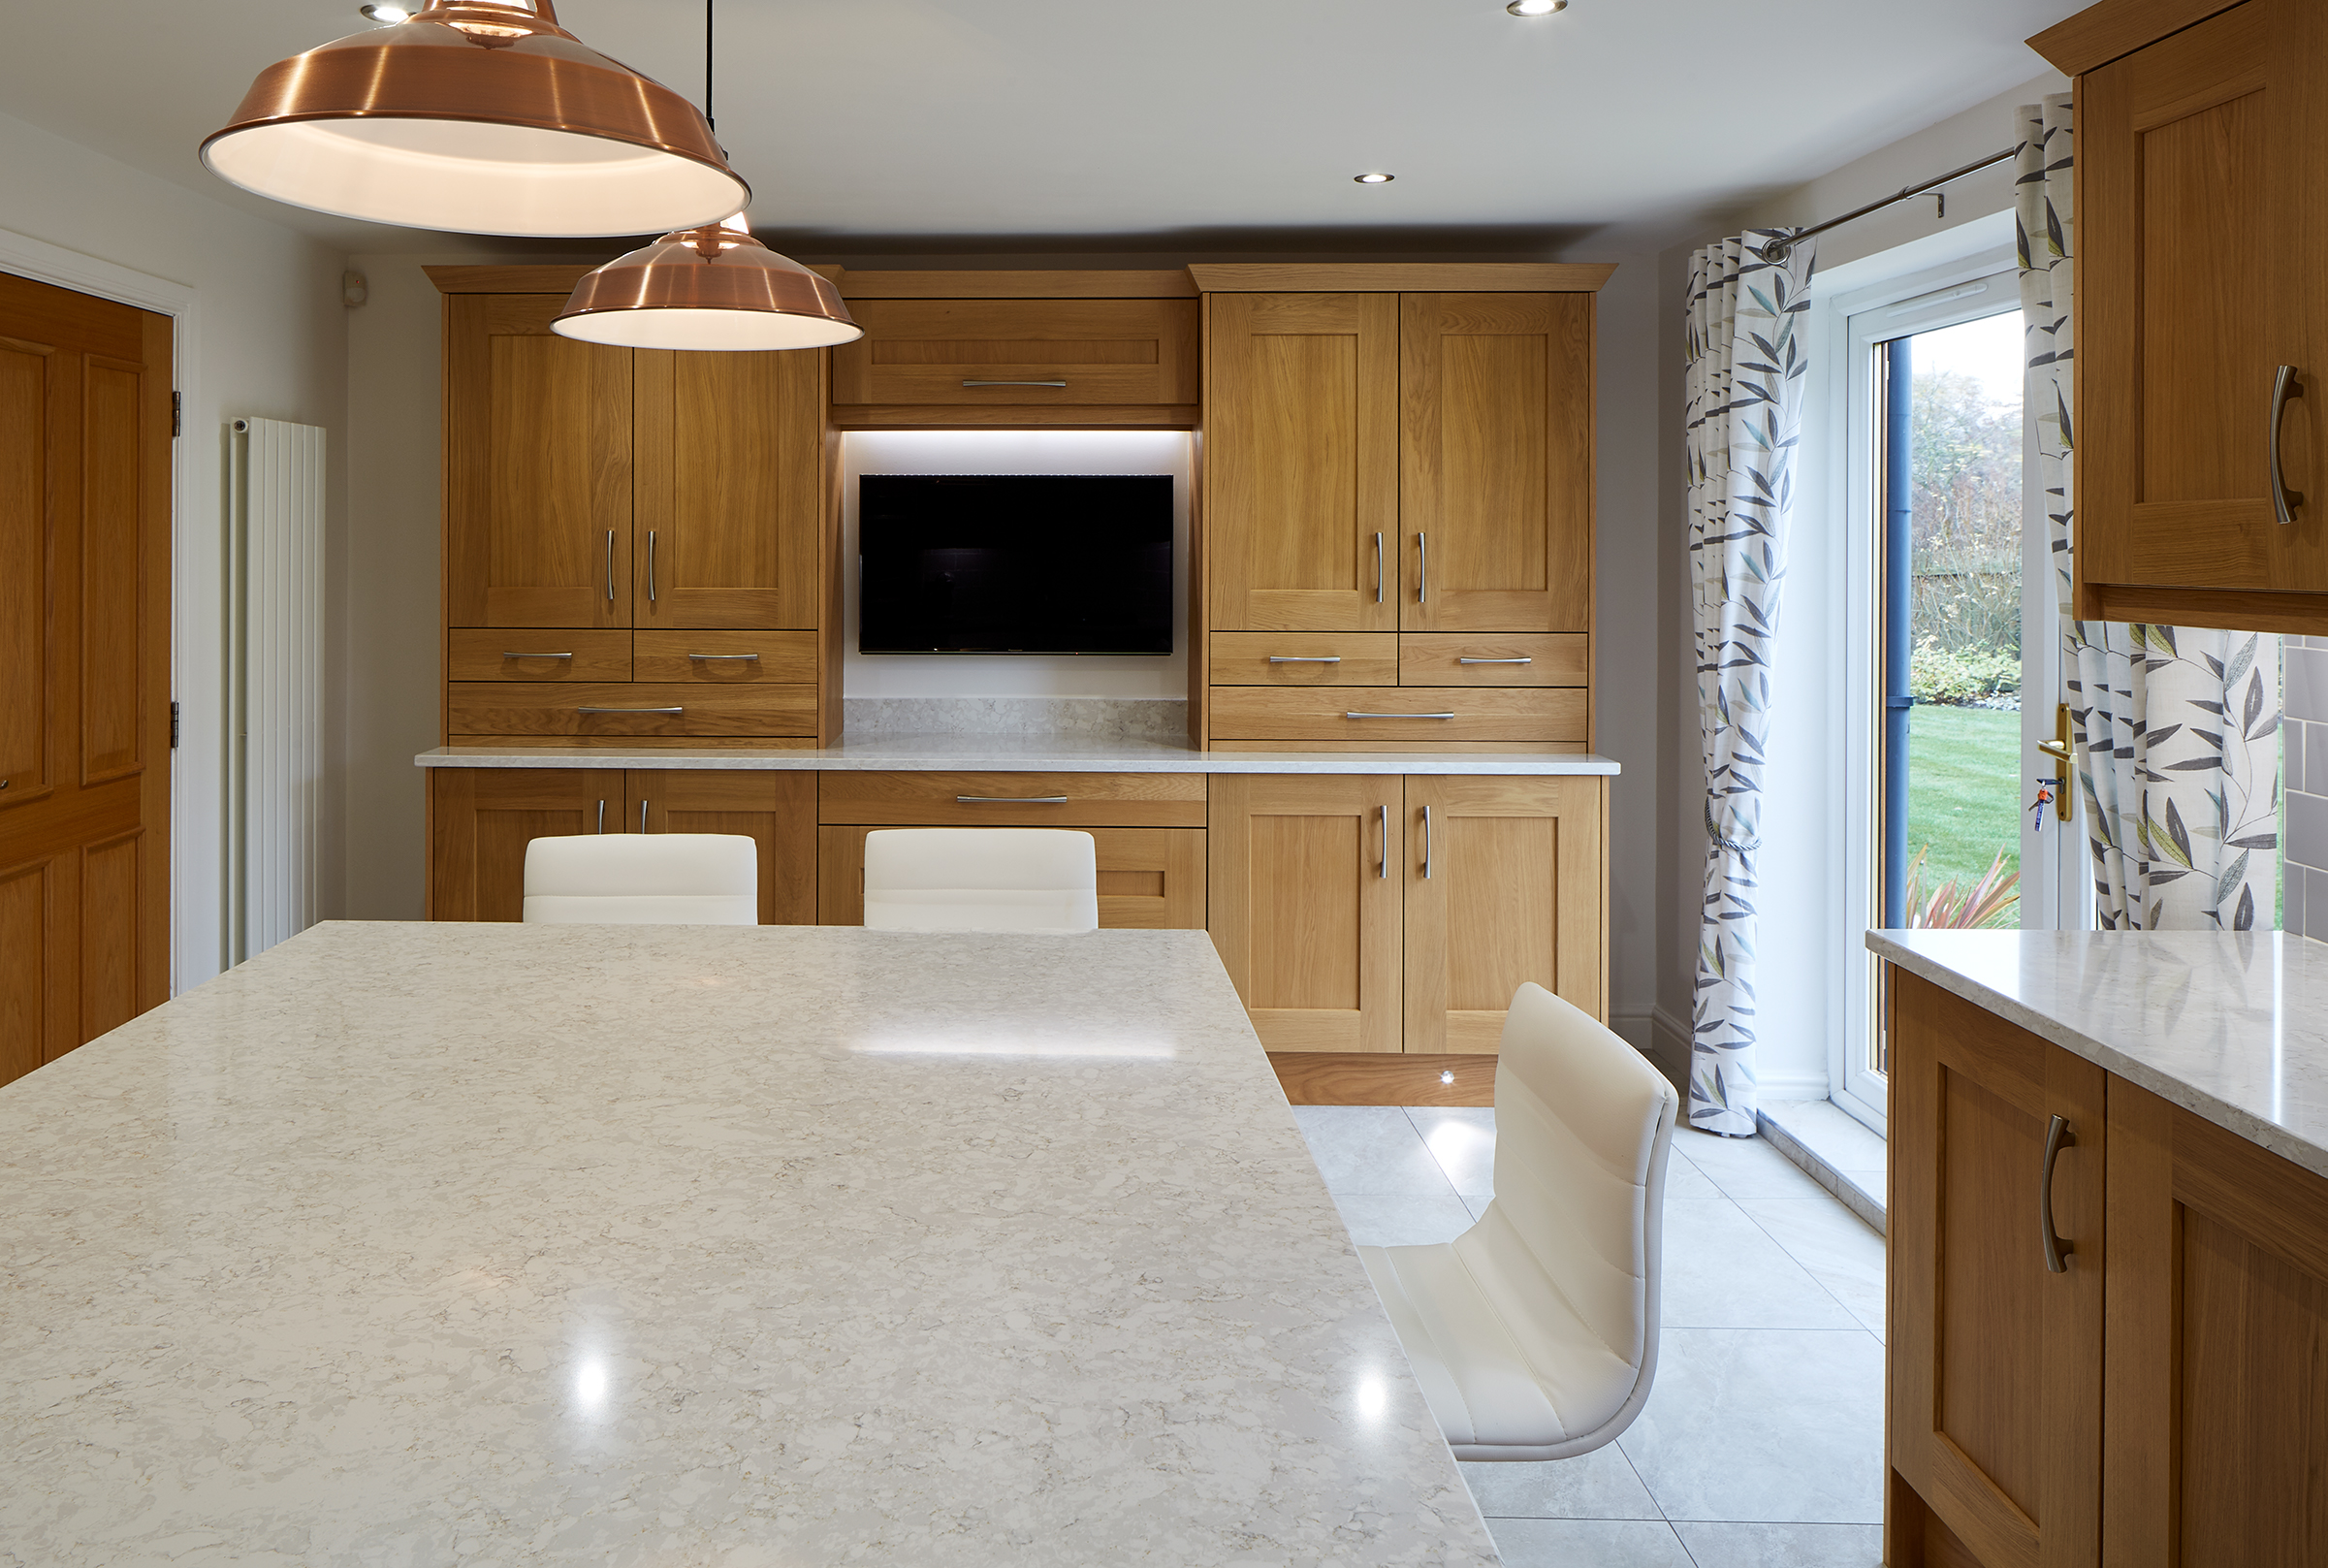 White granite worktop island unit in hardwood kitchen.